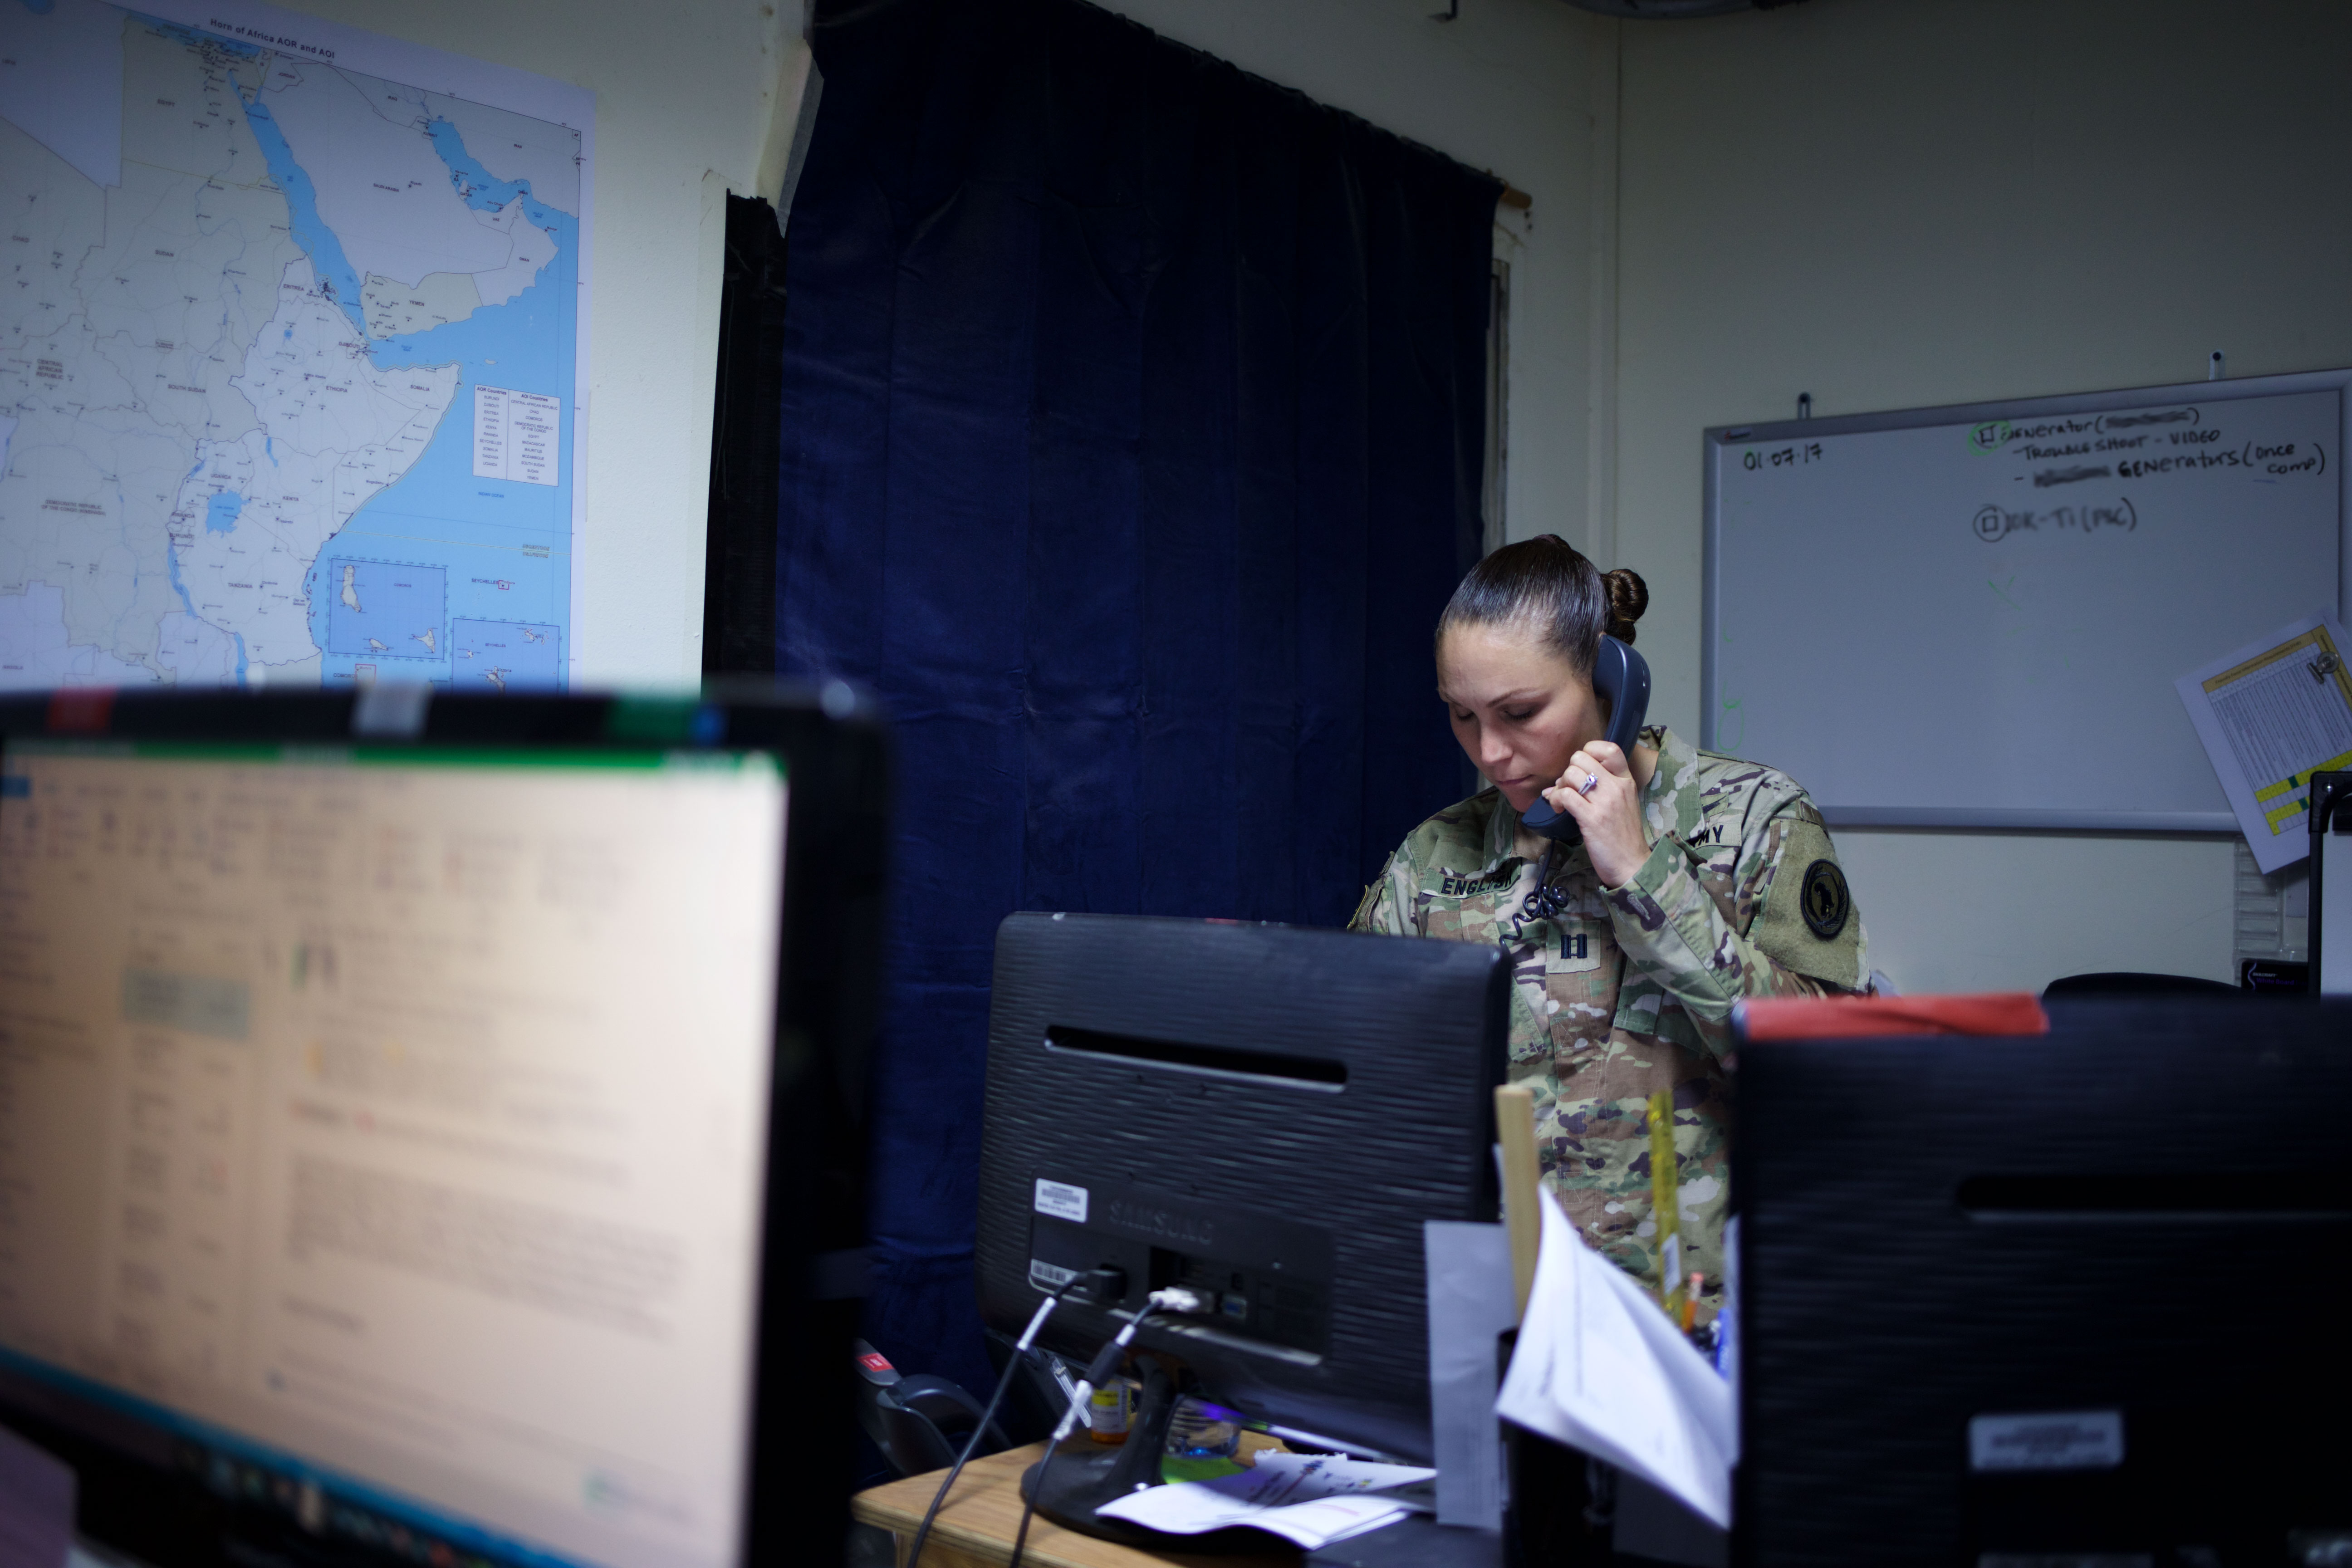 U.S. Army Capt. Amber English, a logistics officer with the Combined Joint Task Force-Horn of Africa Logistics Directorate's Base Operating Support-Integrator office, coordinates support resources at Camp Lemonnier, Djibouti, August 18, 2017. U.S. Africa Command designated CJTF-HOA as BOS-I in August 2016, putting the 500-person task force in charge of coordinating the efficient use of mission resources to sustain U.S. forces in forward operating locations in Somalia. Currently, CJTF-HOA's main effort is to improve security in Somalia by neutralizing violent extremist organizations like al-Shabaab and successfully transitioning security responsibilities from the African Union Mission in Somalia to the Somali National Security Forces. (U.S. Army photo by Capt. Alán Ortiz)